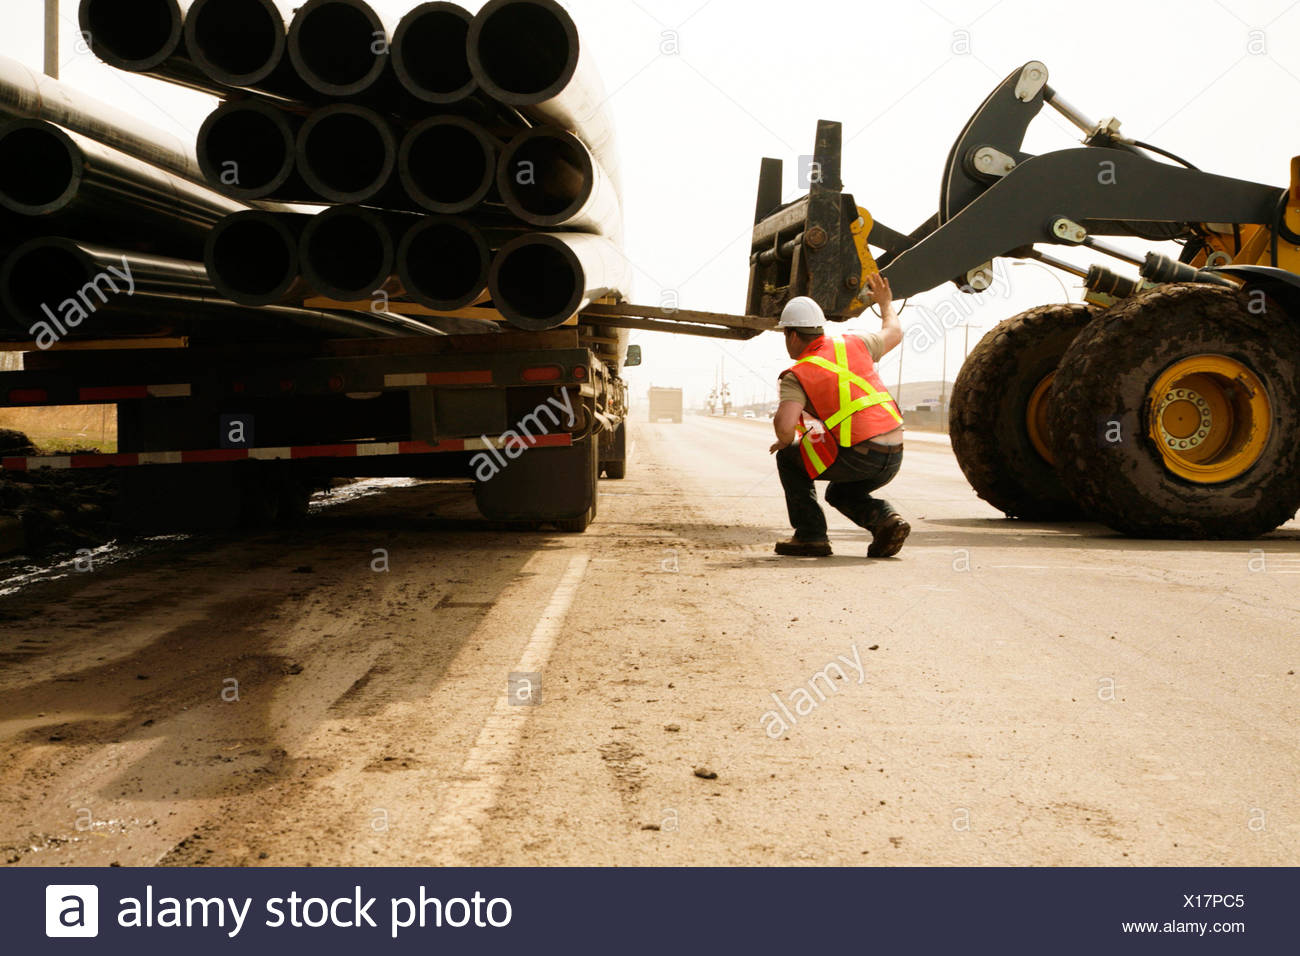 A Workman On Site Guiding A Forklift - Stock Image